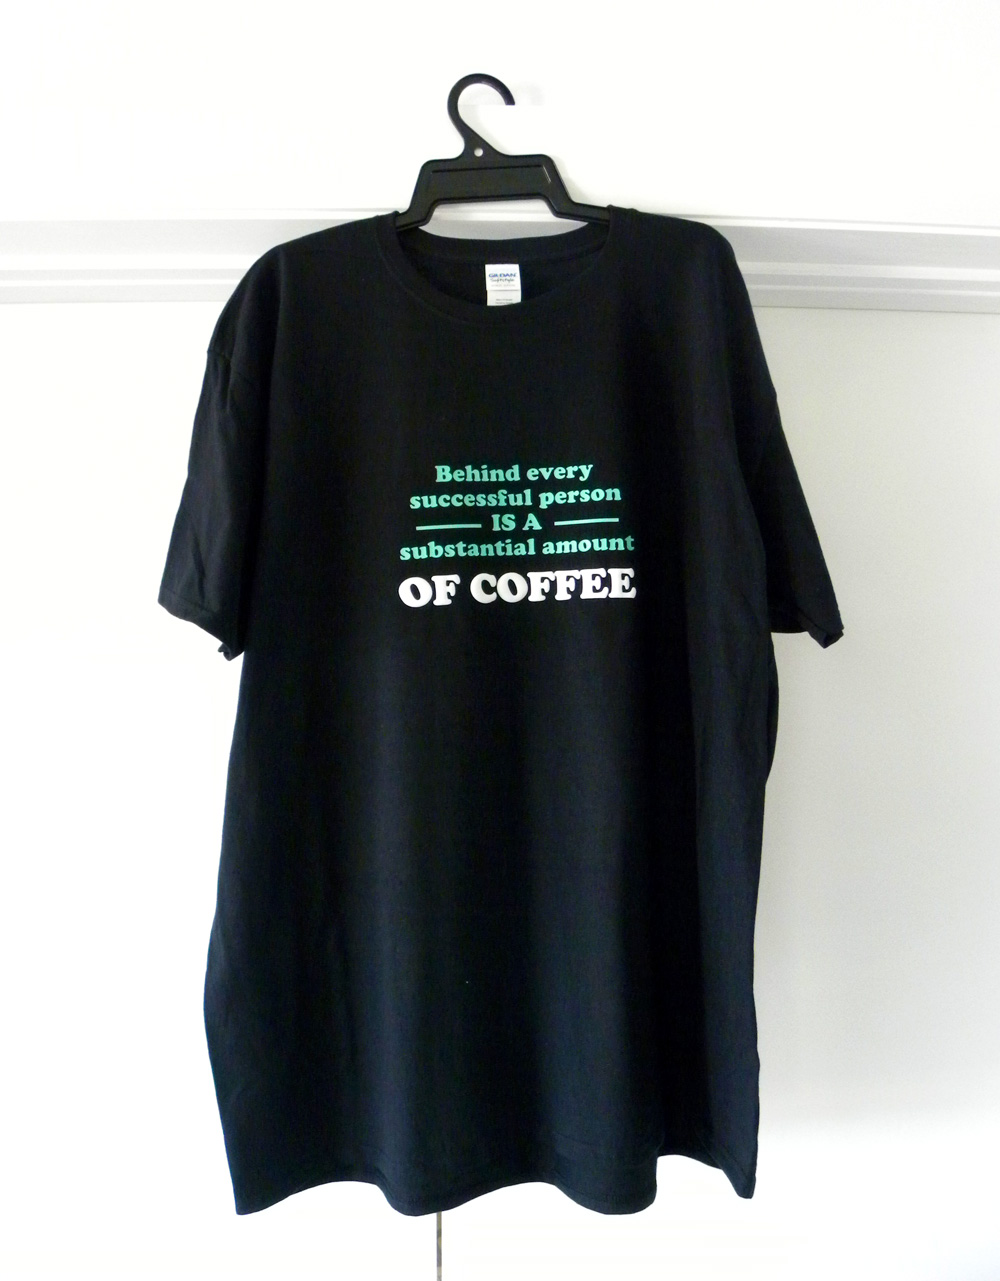 tshirt design, coffee